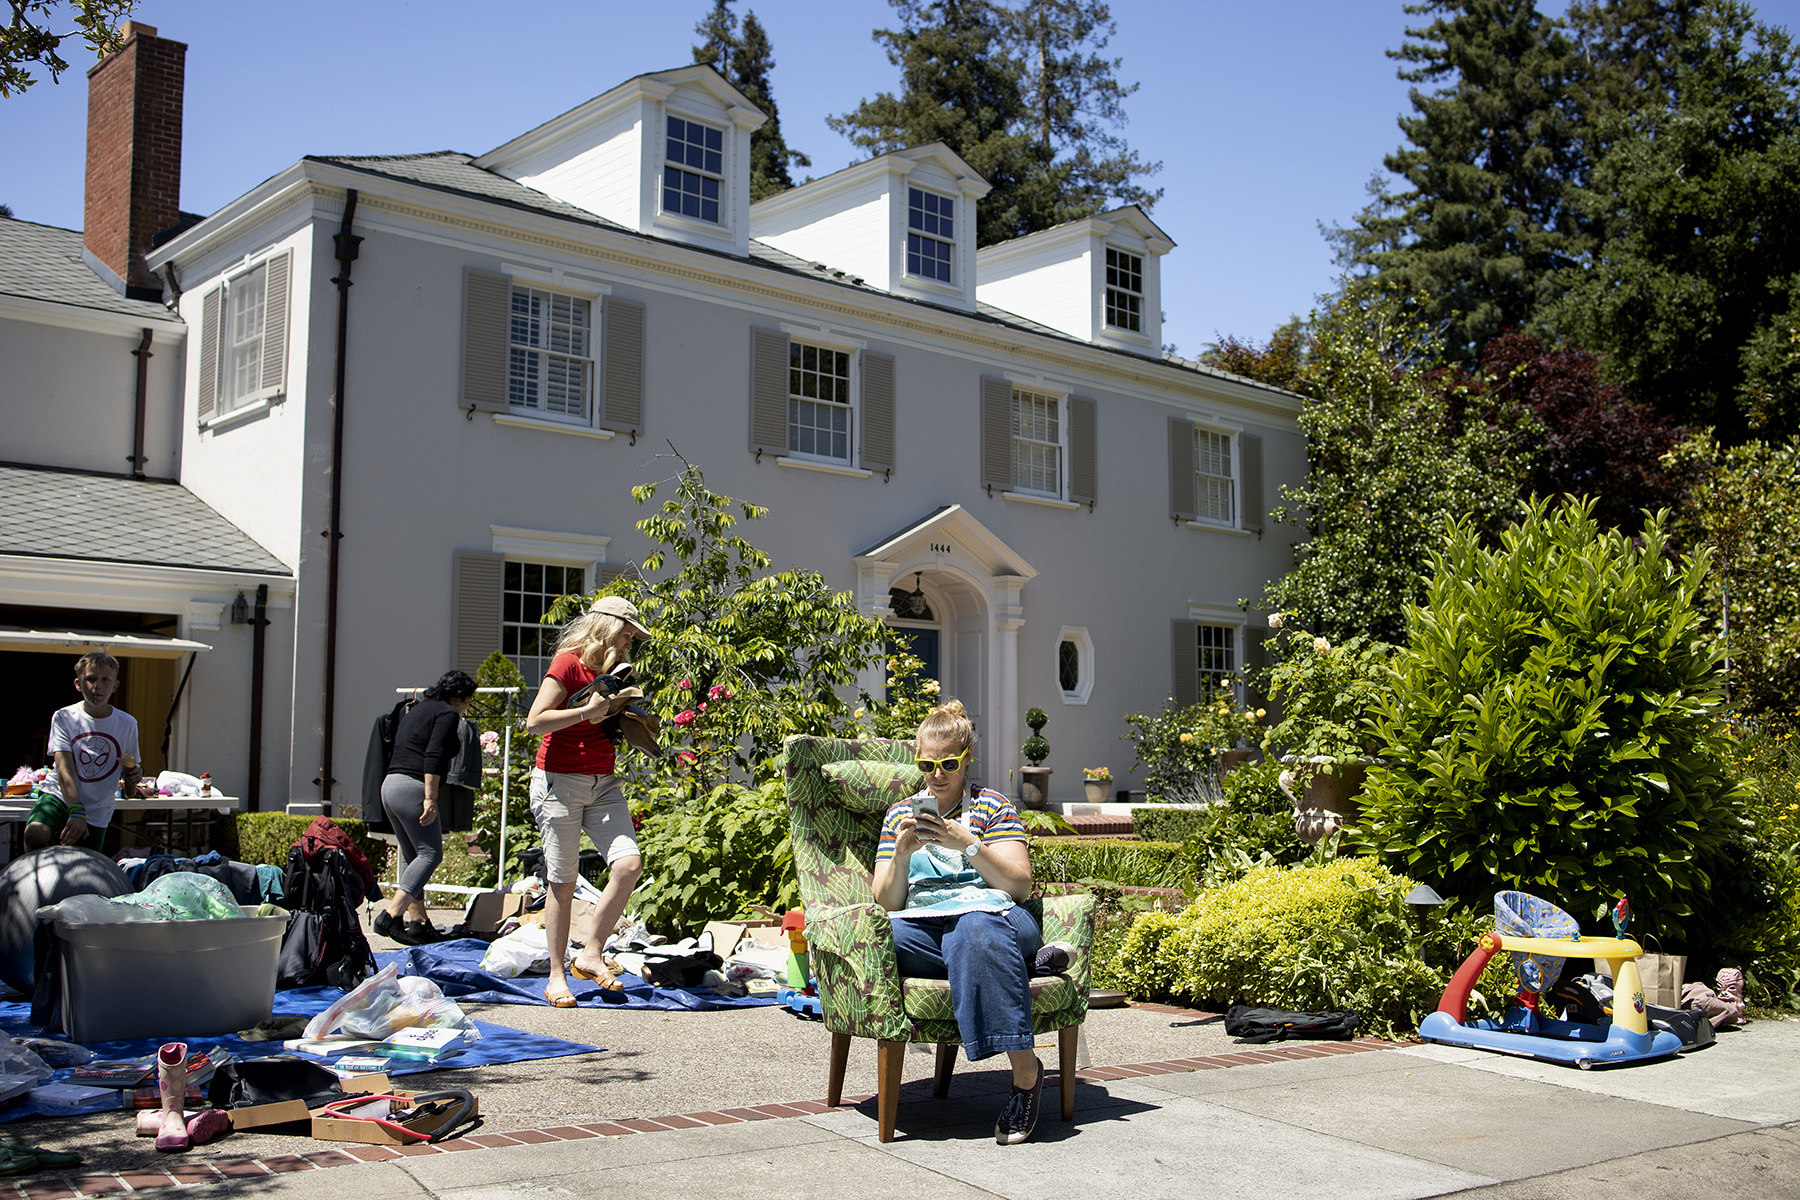 Alice Jacob (center) teams up with her friend Anne Butler (left) to host a garage sale at Butler's house in the Crescent Park neighborhood, where Mark Zuckerberg calls home, in Palo Alto, Calif., on Saturday, May 25, 2019. According to the real estate company Redfin, the median home sales price in Palo Alto is $2,760,000.